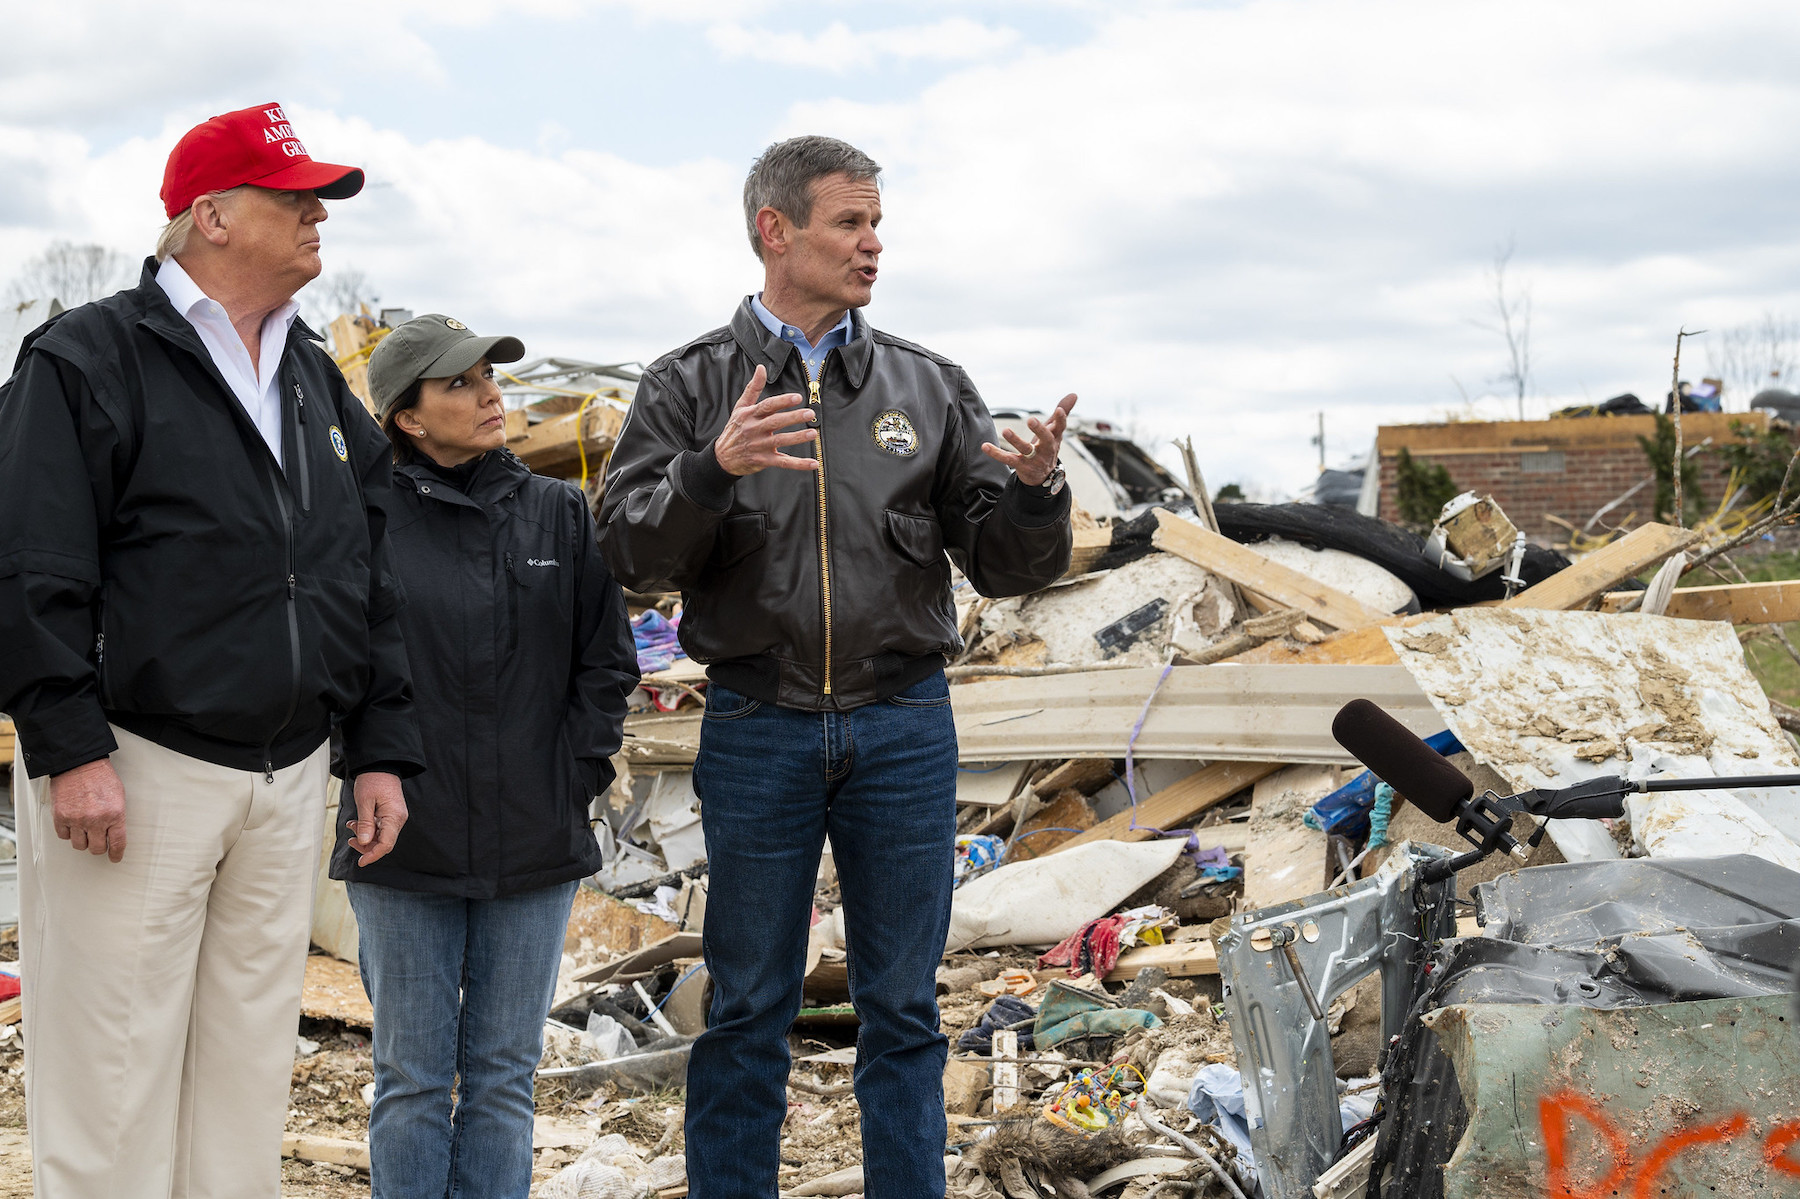 Gov. Bill Lee and his wife, Maria, join President Donald Trump on a March 6 tour of damage caused when tornadoes thrashed parts of Middle Tennessee on March 4.